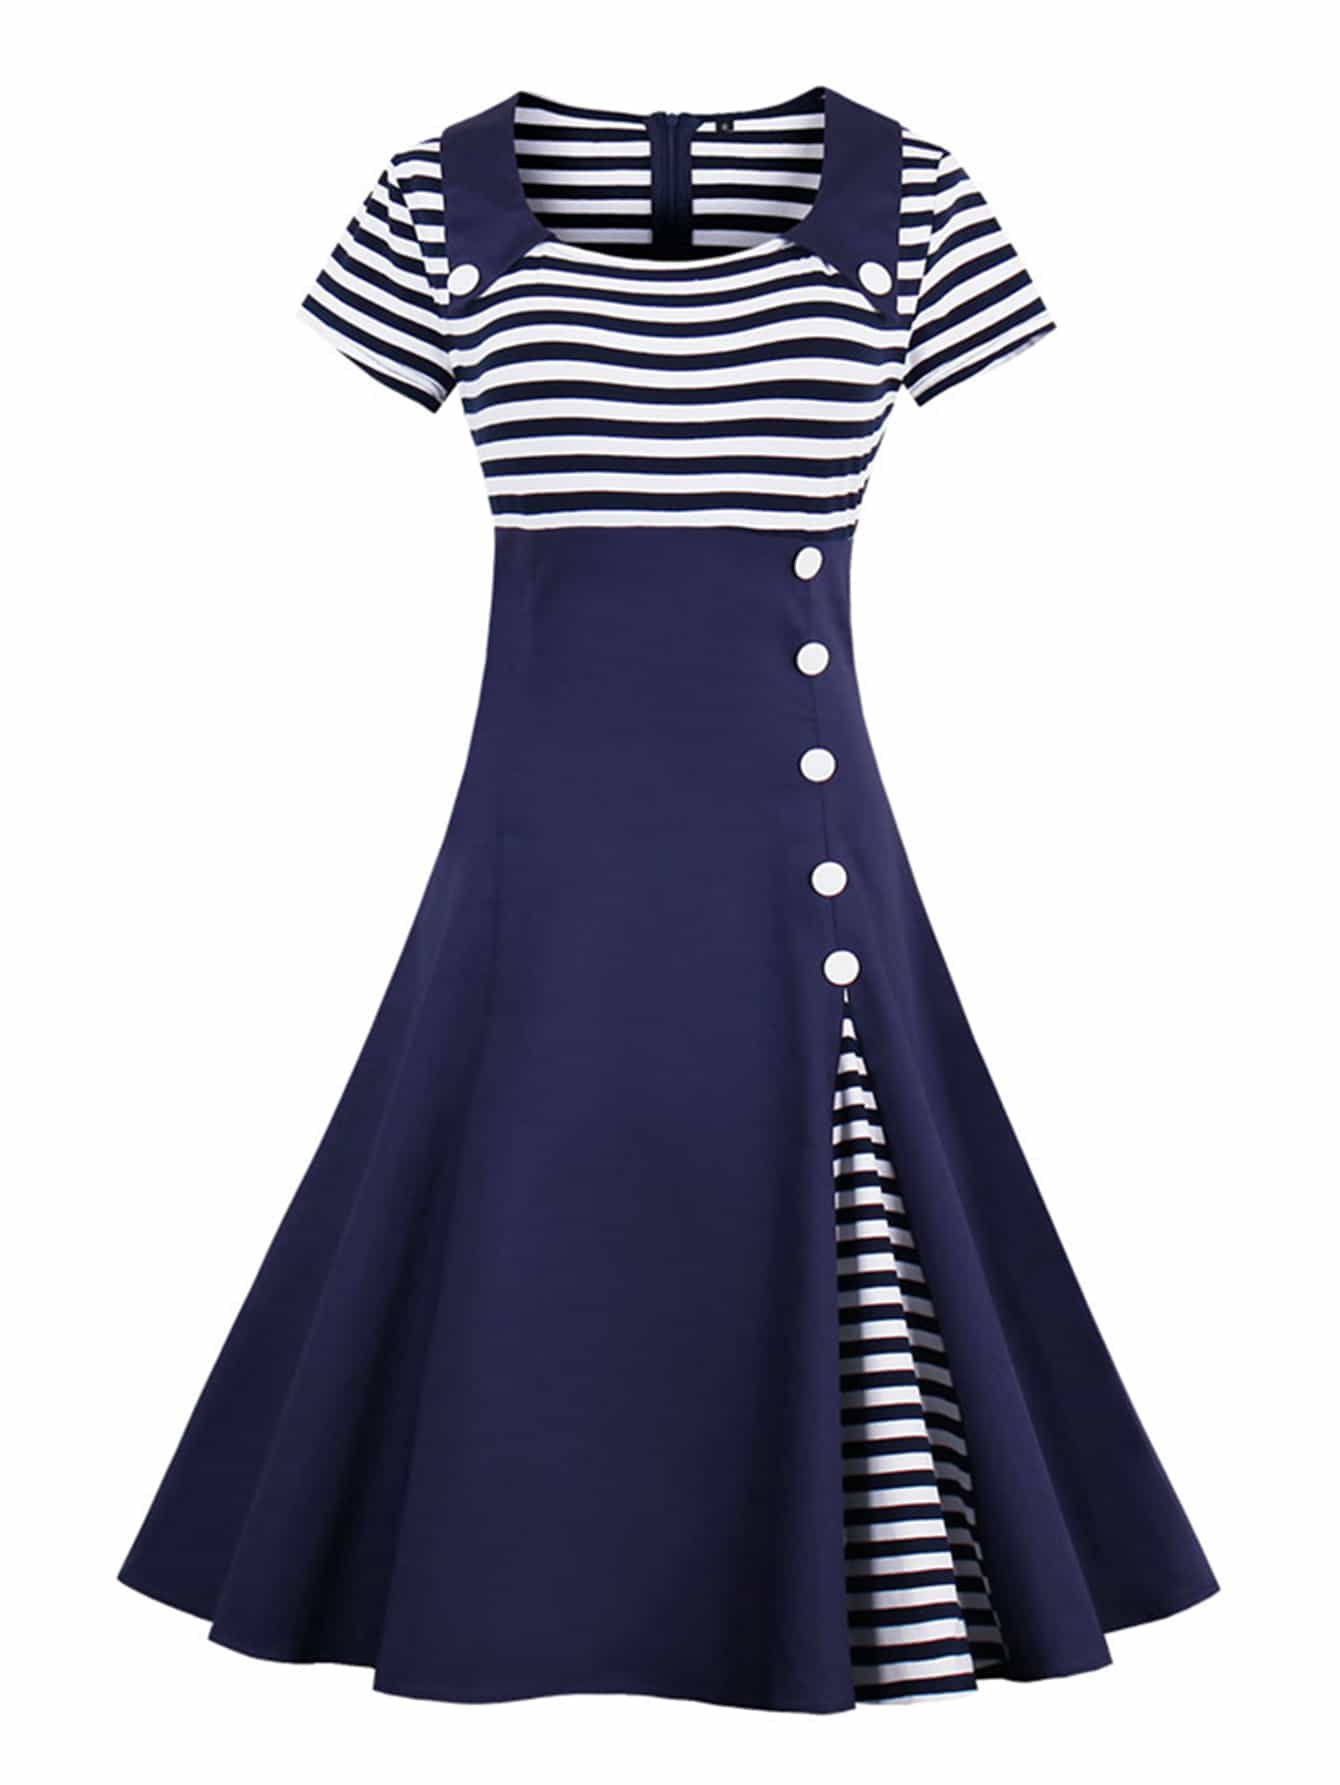 Contrast Striped Button Detail Flare Dress contrast collar bow tied detail striped dress